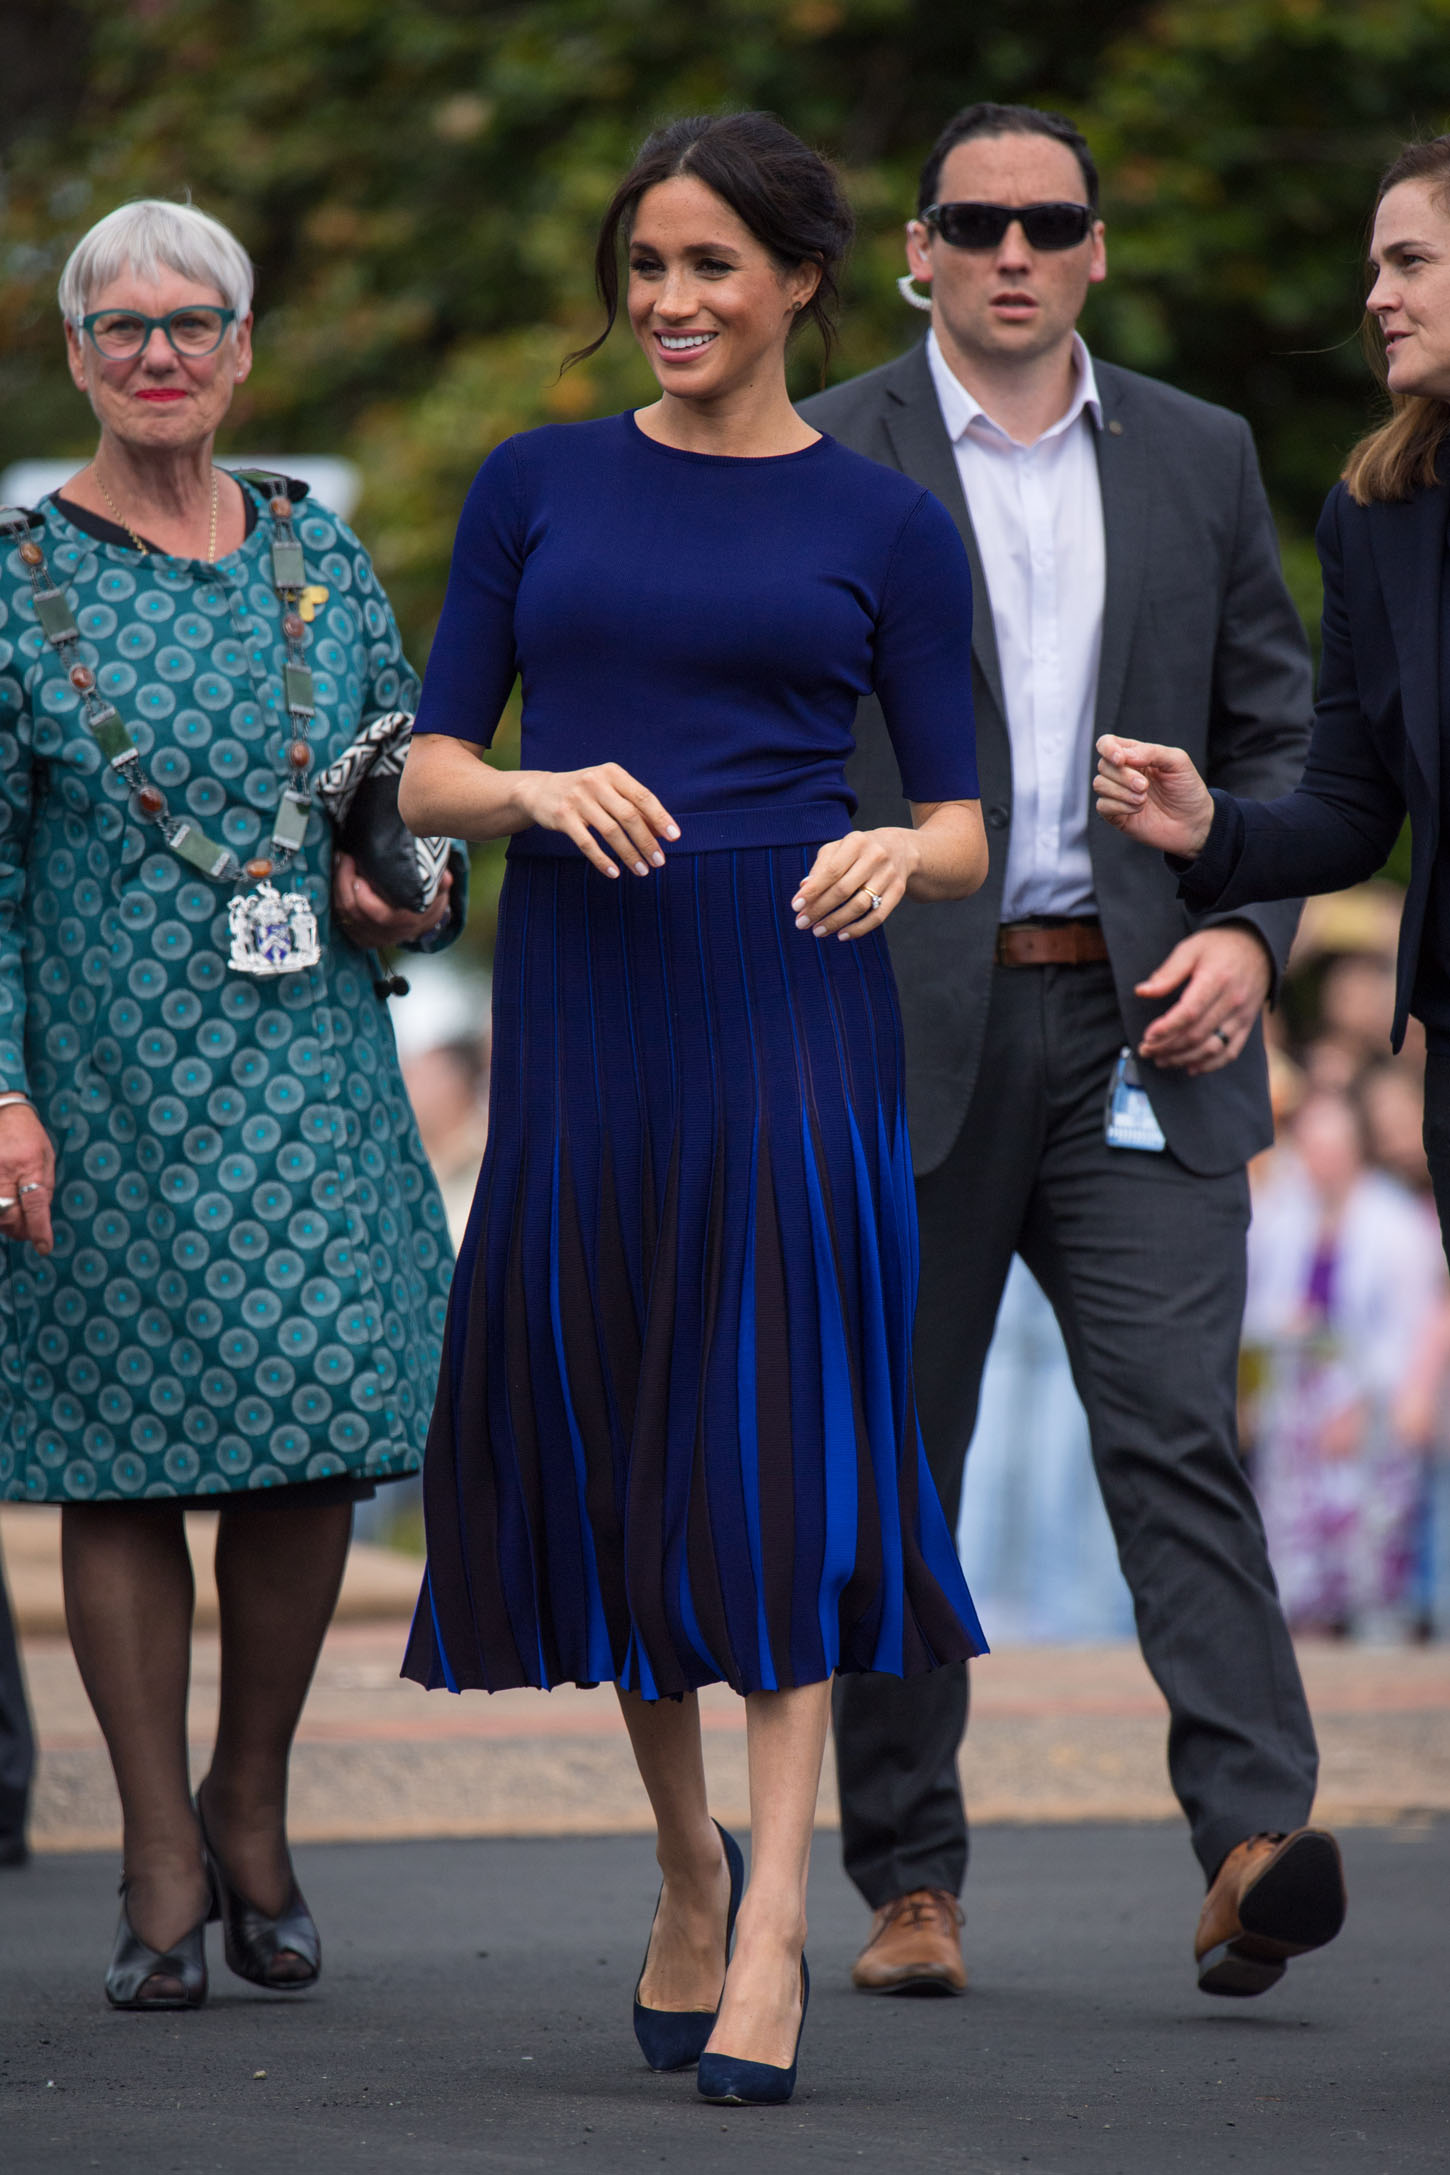 ROTORUA, NEW ZEALAND - OCTOBER 31:  Megan, Duchess of Sussex during a walkabout on day four of the royal couple's tour of New Zealand on October 31, 2018 in Rotorua, New Zealand. The Duke and Duchess of Sussex are on the final day of their official 16-day Autumn tour visiting cities in Australia, Fiji, Tonga and New Zealand. (Photo by Dominic Lipinski-Pool/Getty Images)